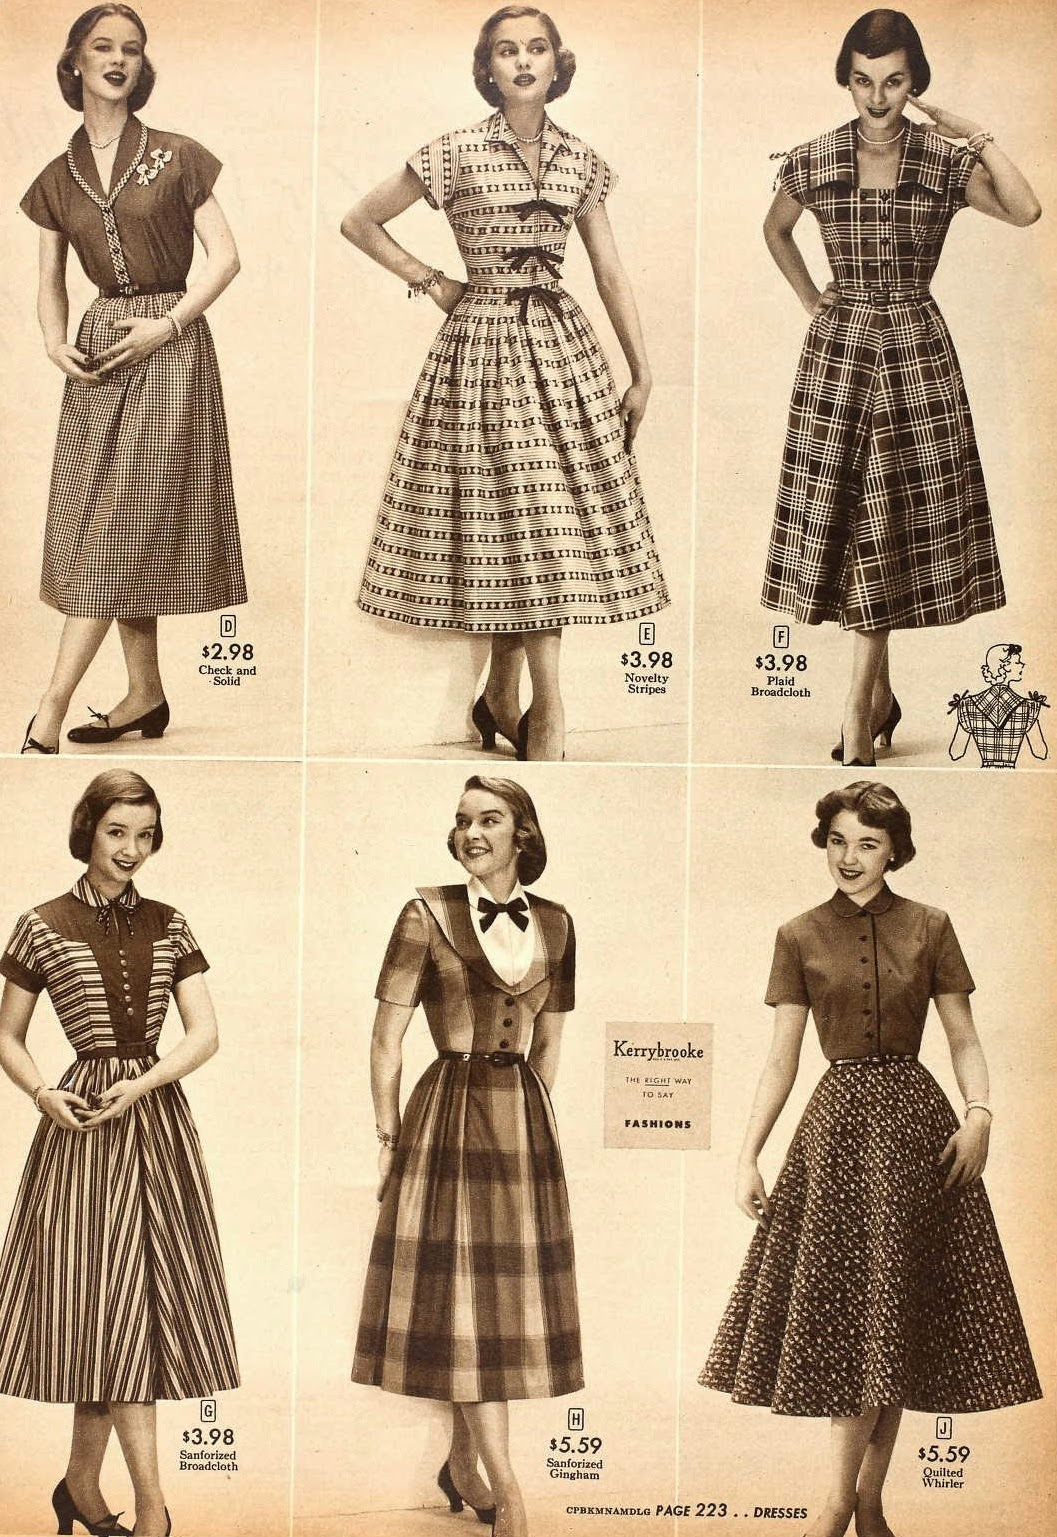 Snapped Garters: 1952 Fashions From Sears